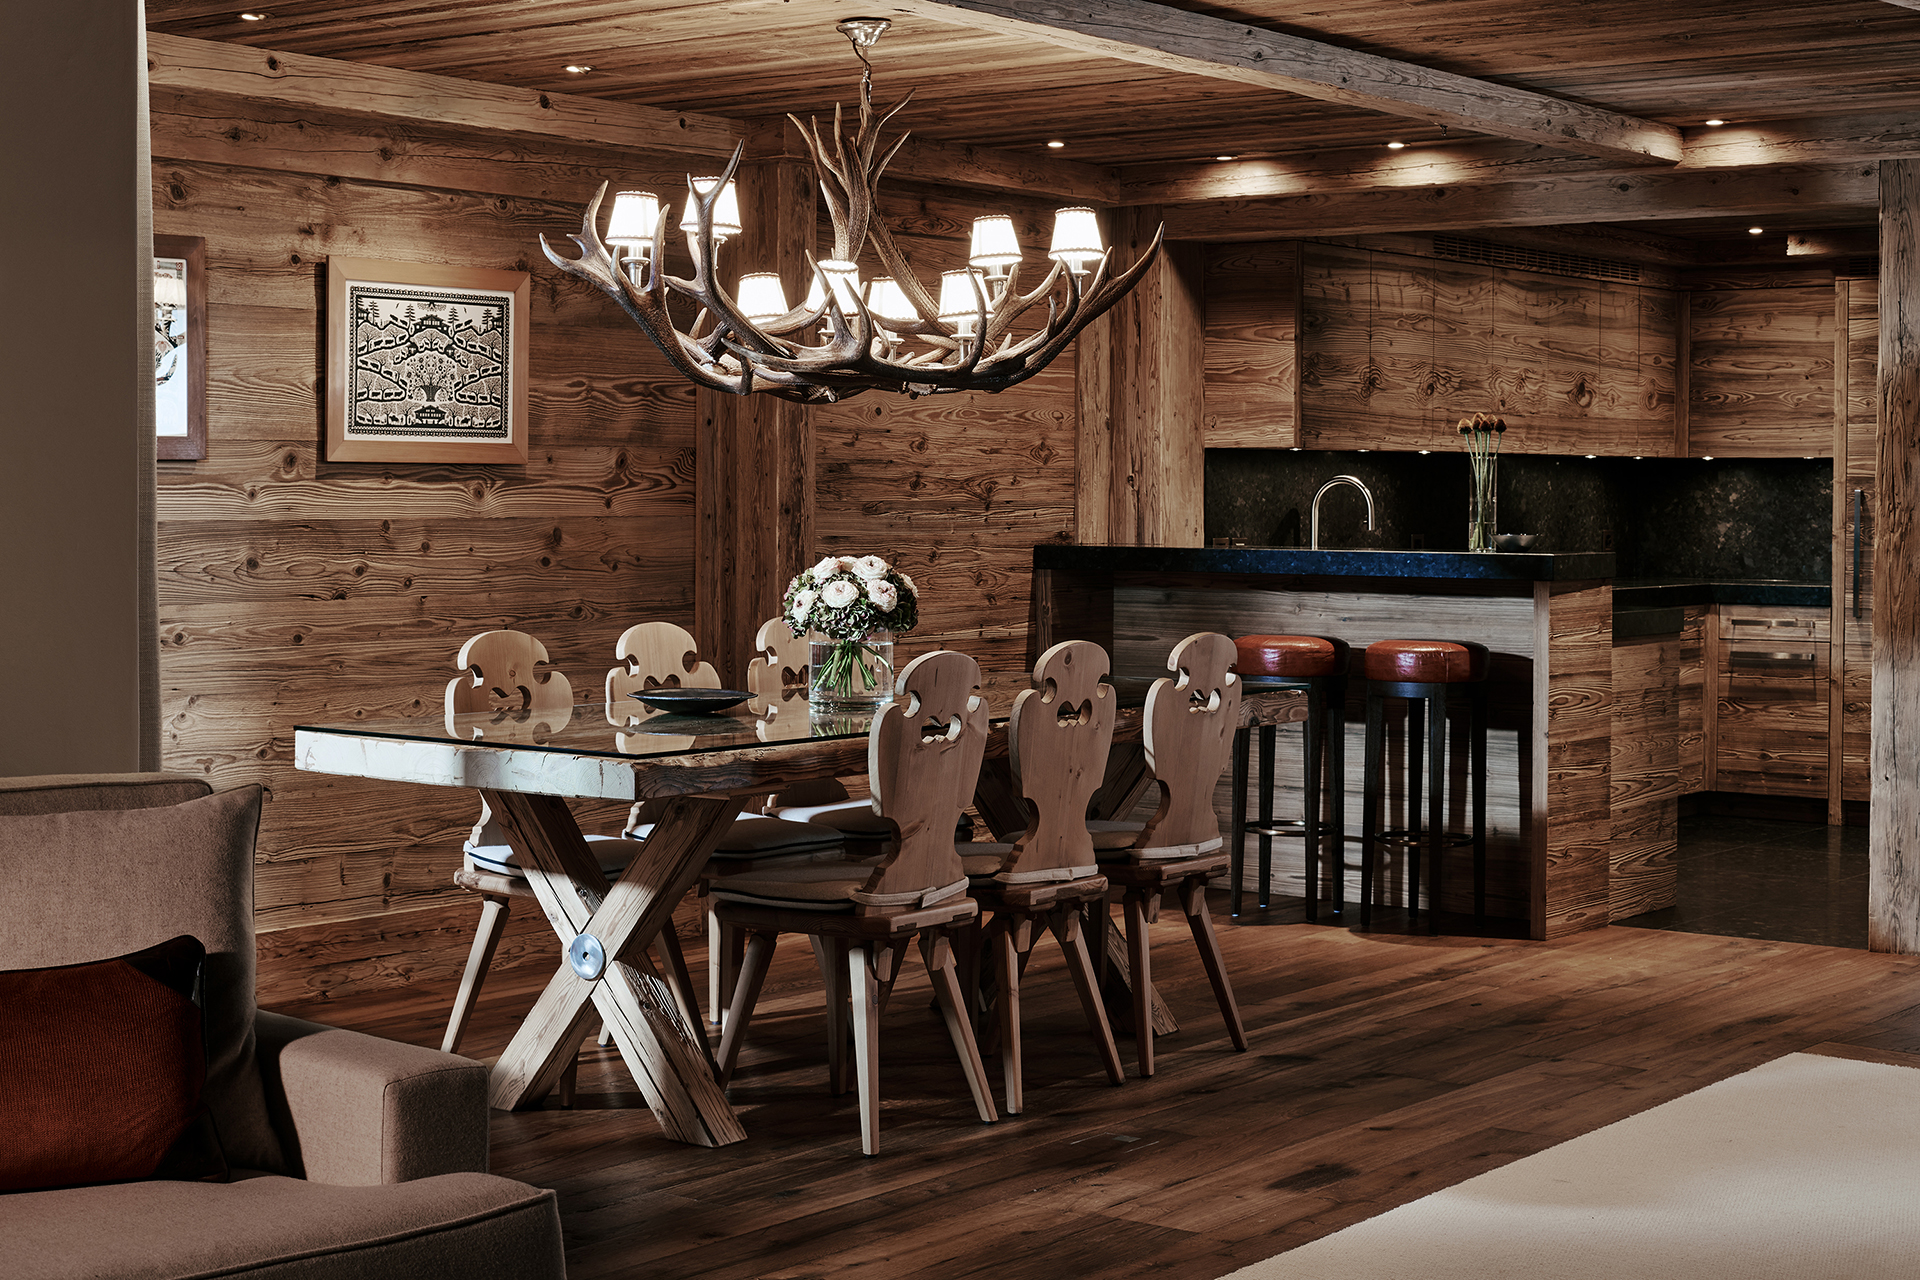 TheAlpinaGstaad_Rooms&Suites_0037_1920.jpg